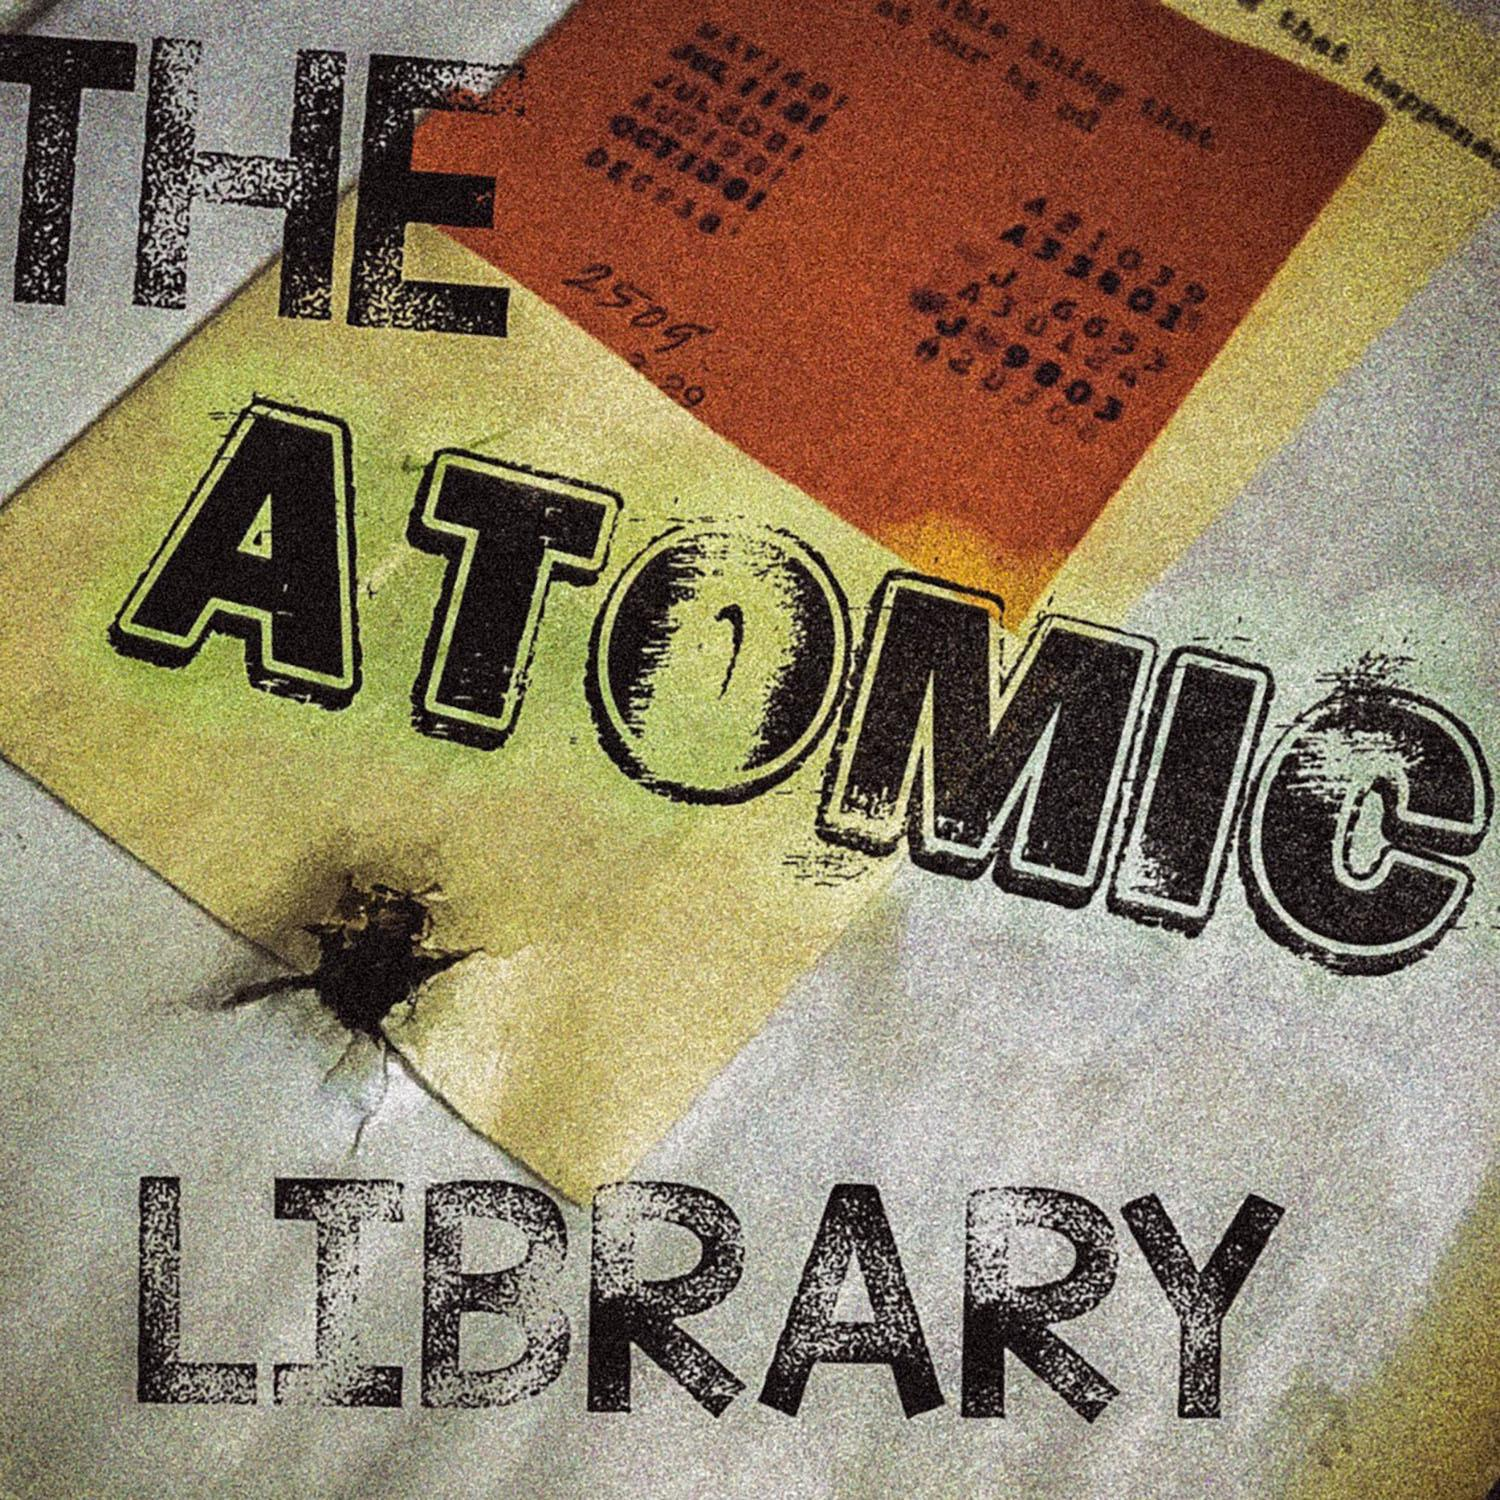 The Atomic Library show art